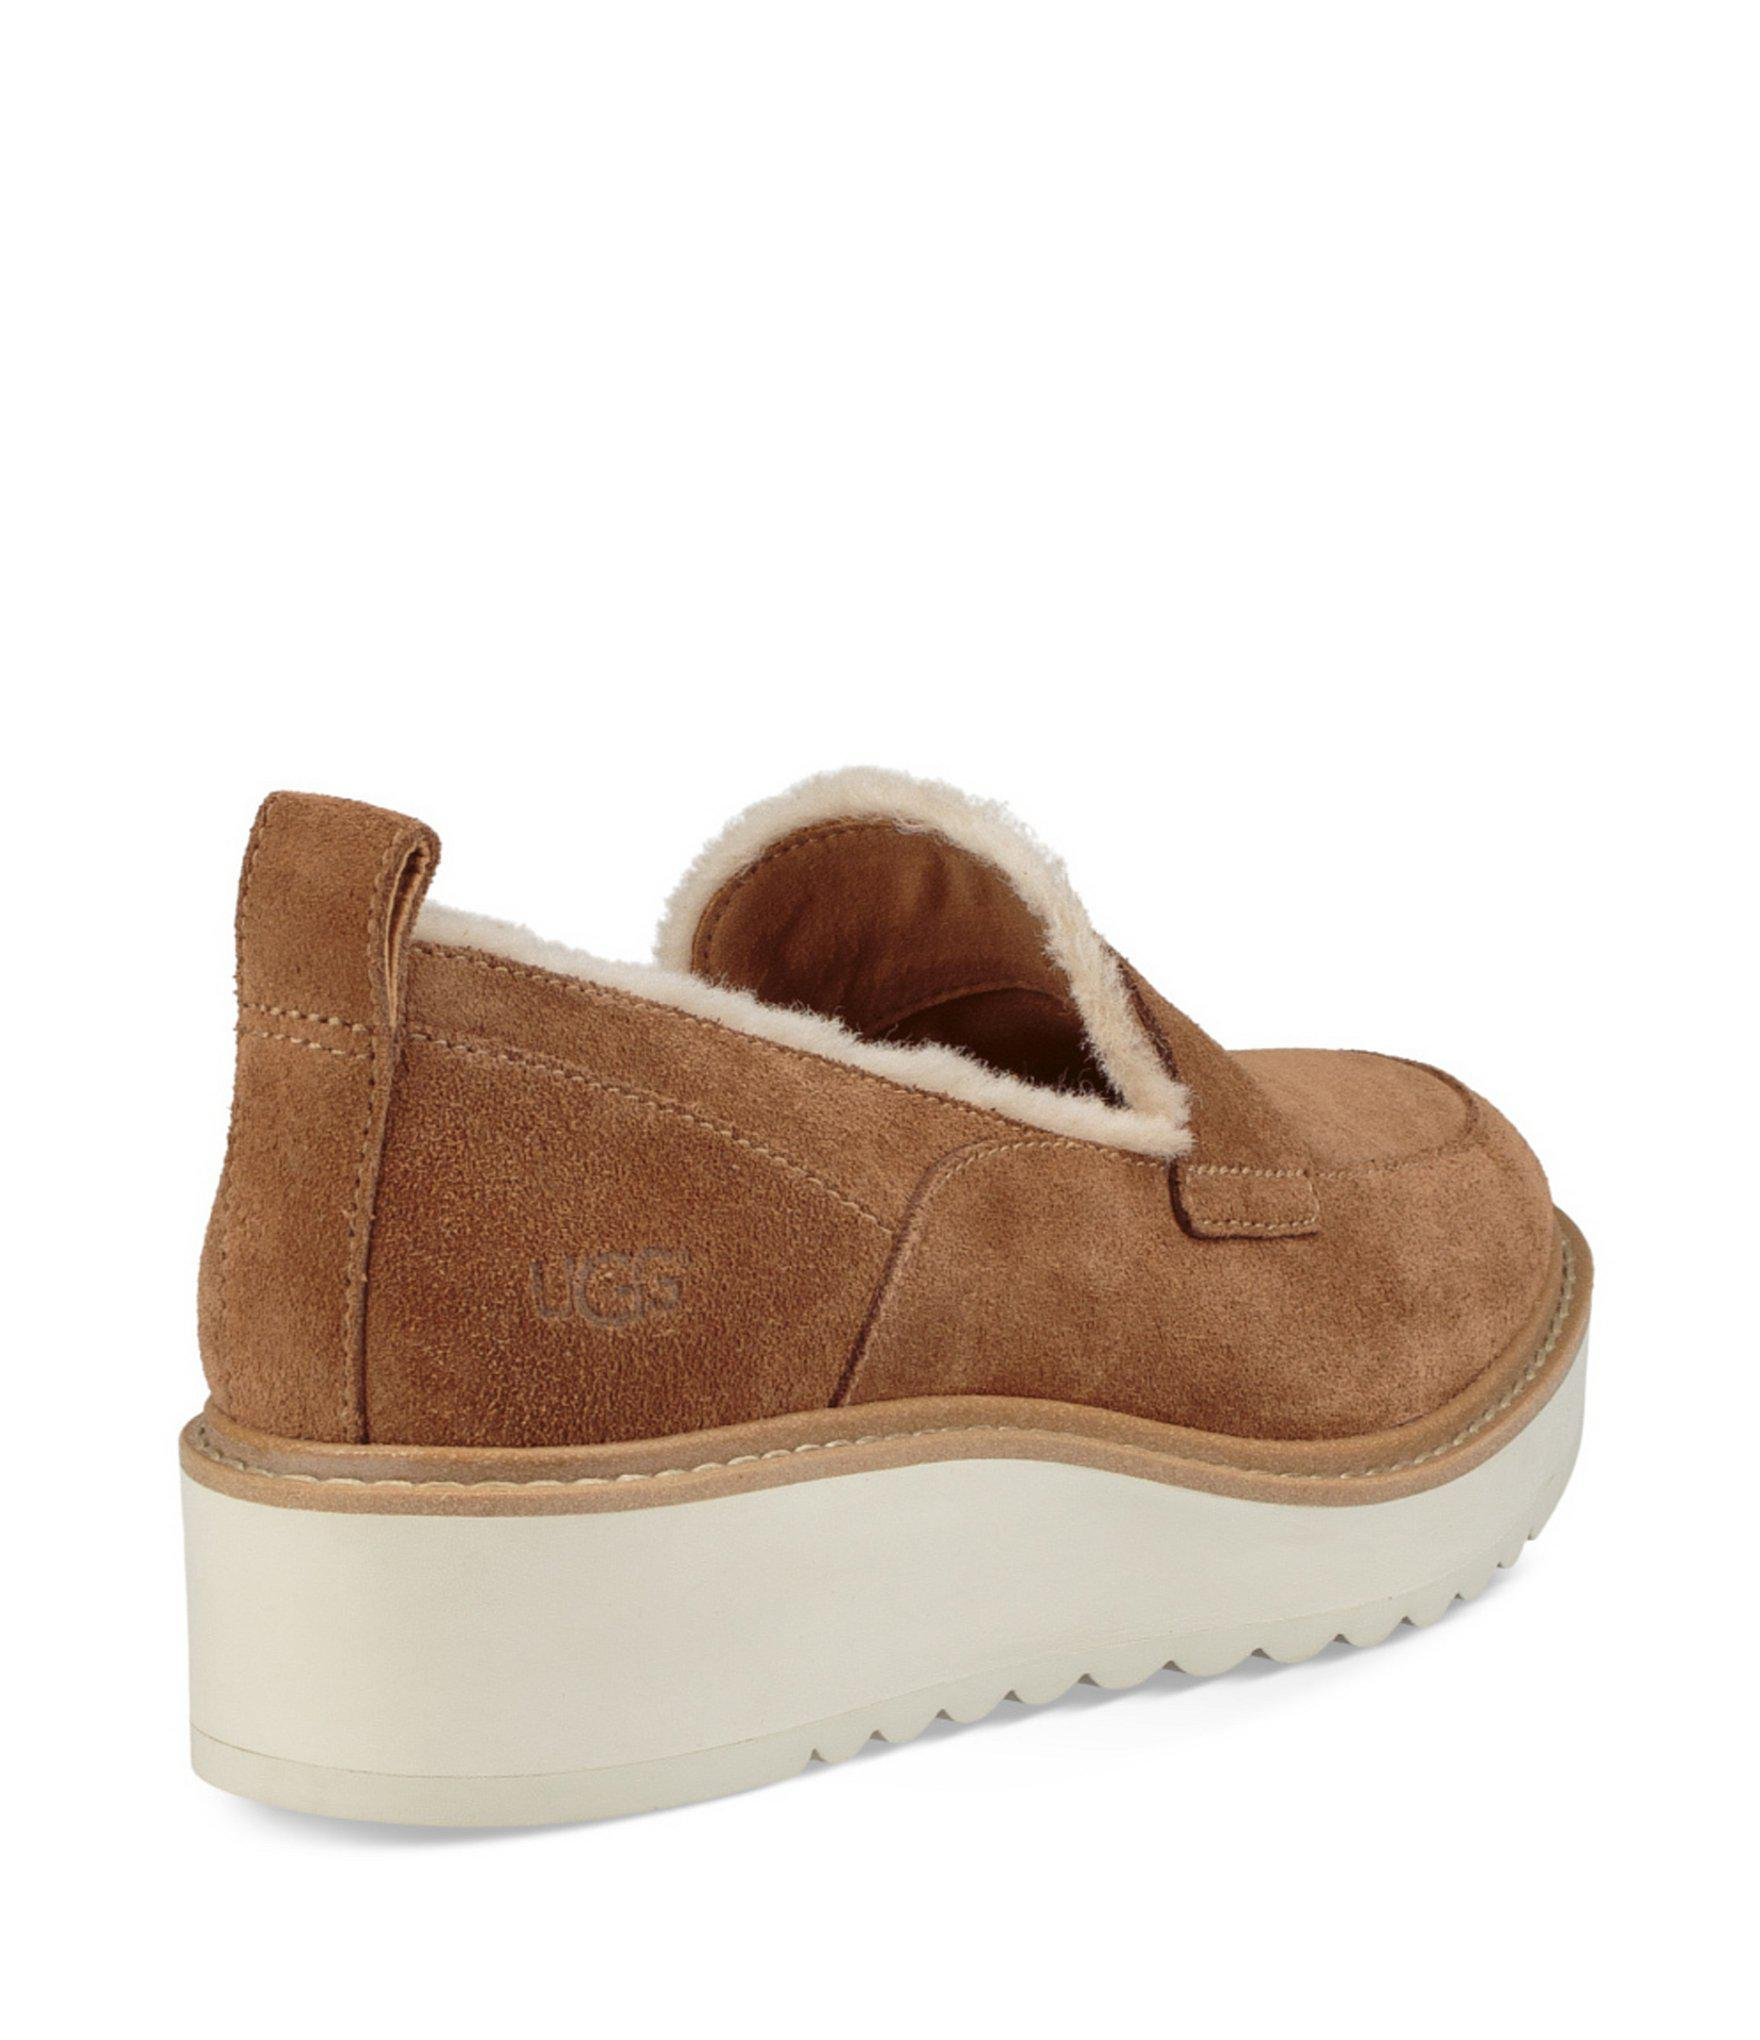 647f7b709fc Lyst - UGG Atwater Spill Seam Wedge Loafers in Brown